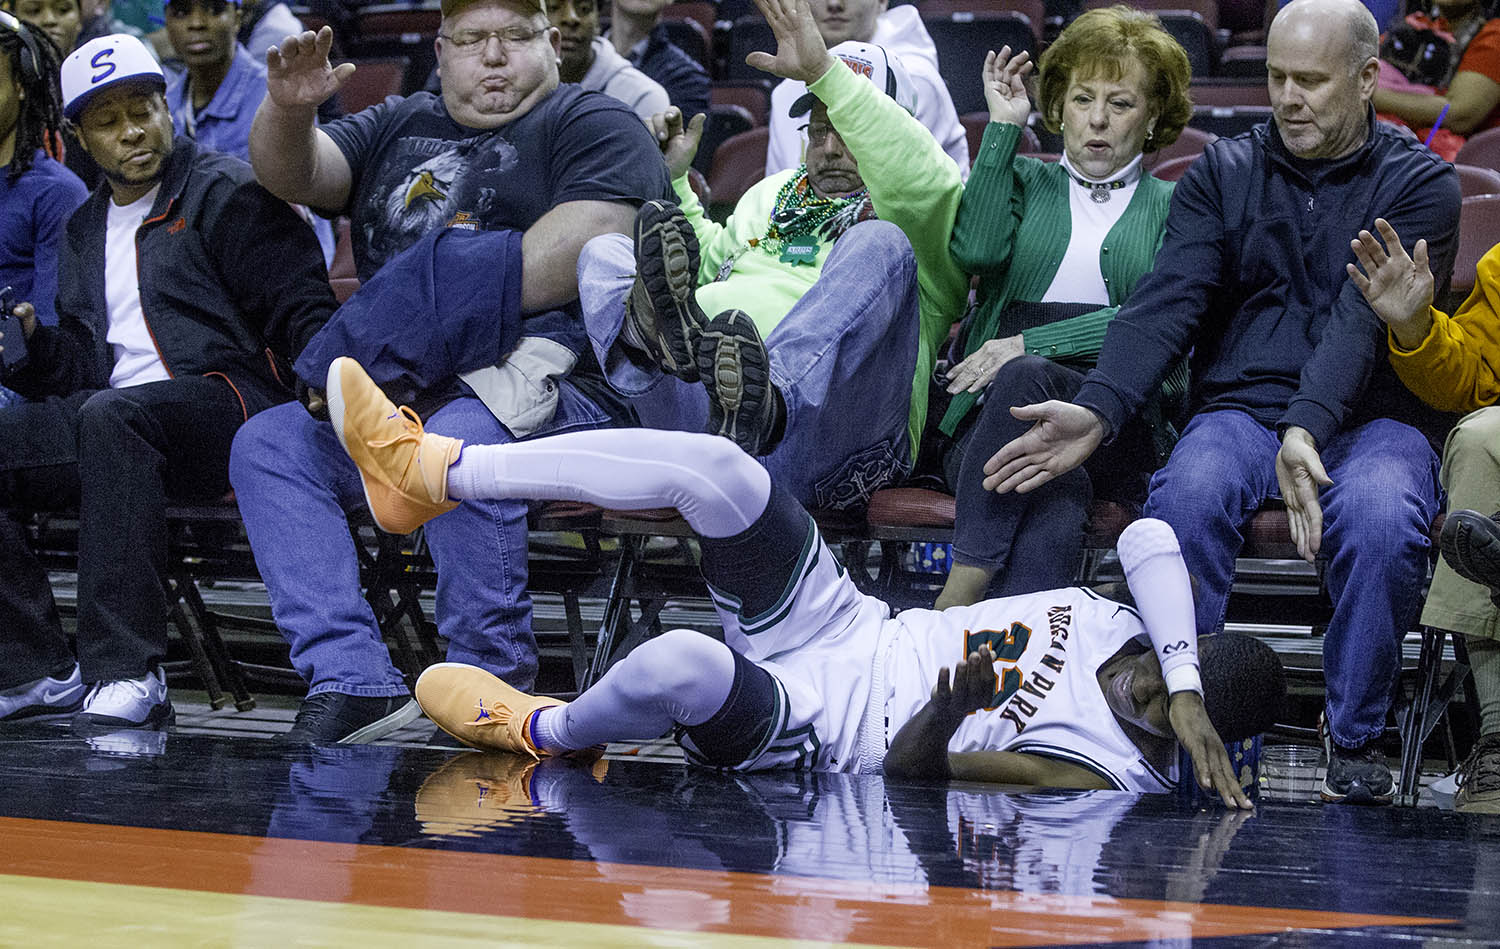 Morgan Park's Marcus Watson crashes out of bounds during the 3A championship game at Carver Arena in Peoria, Ill., Saturday, March 17, 2018. [Ted Schurter/The State Journal-Register]